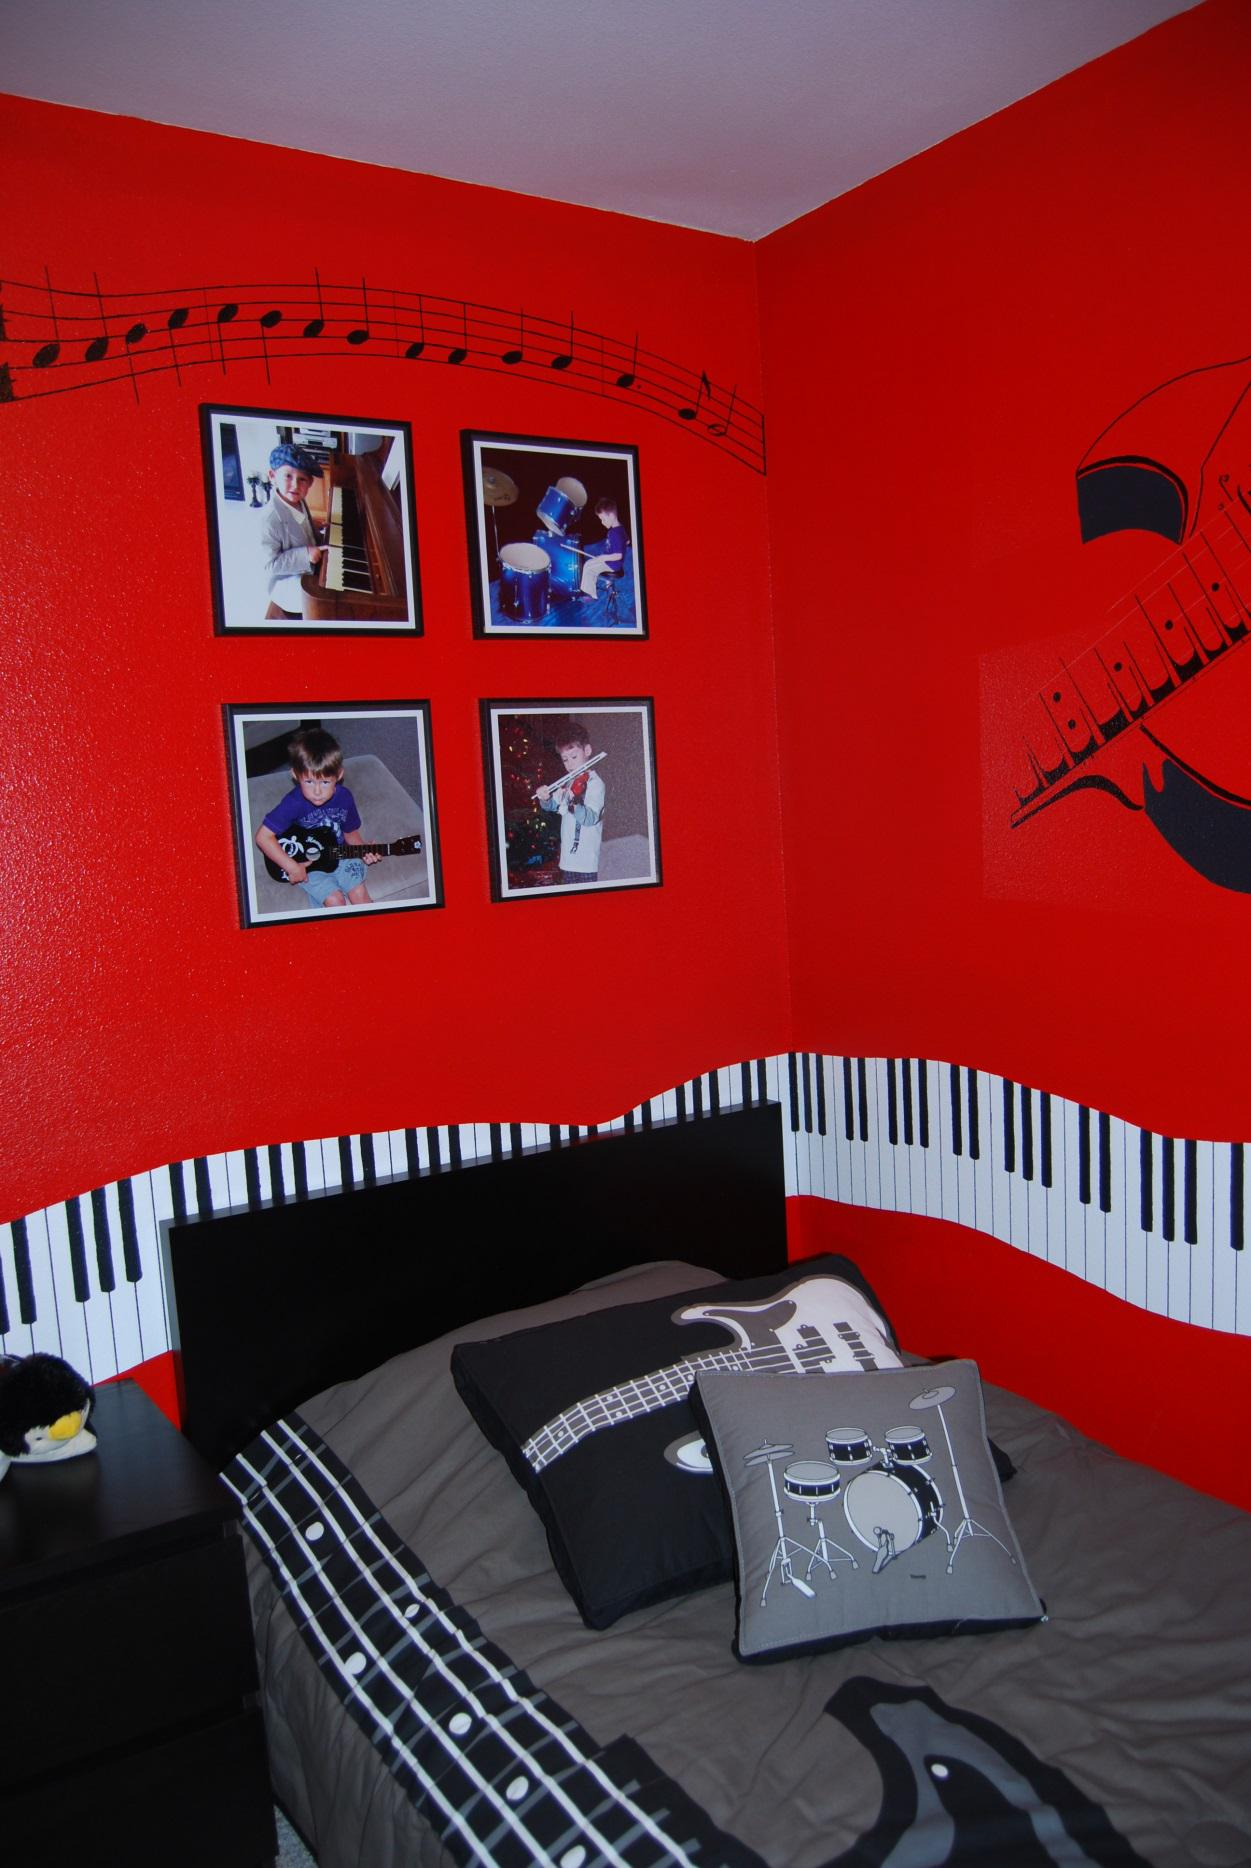 Designing a music-themed child's bedroom